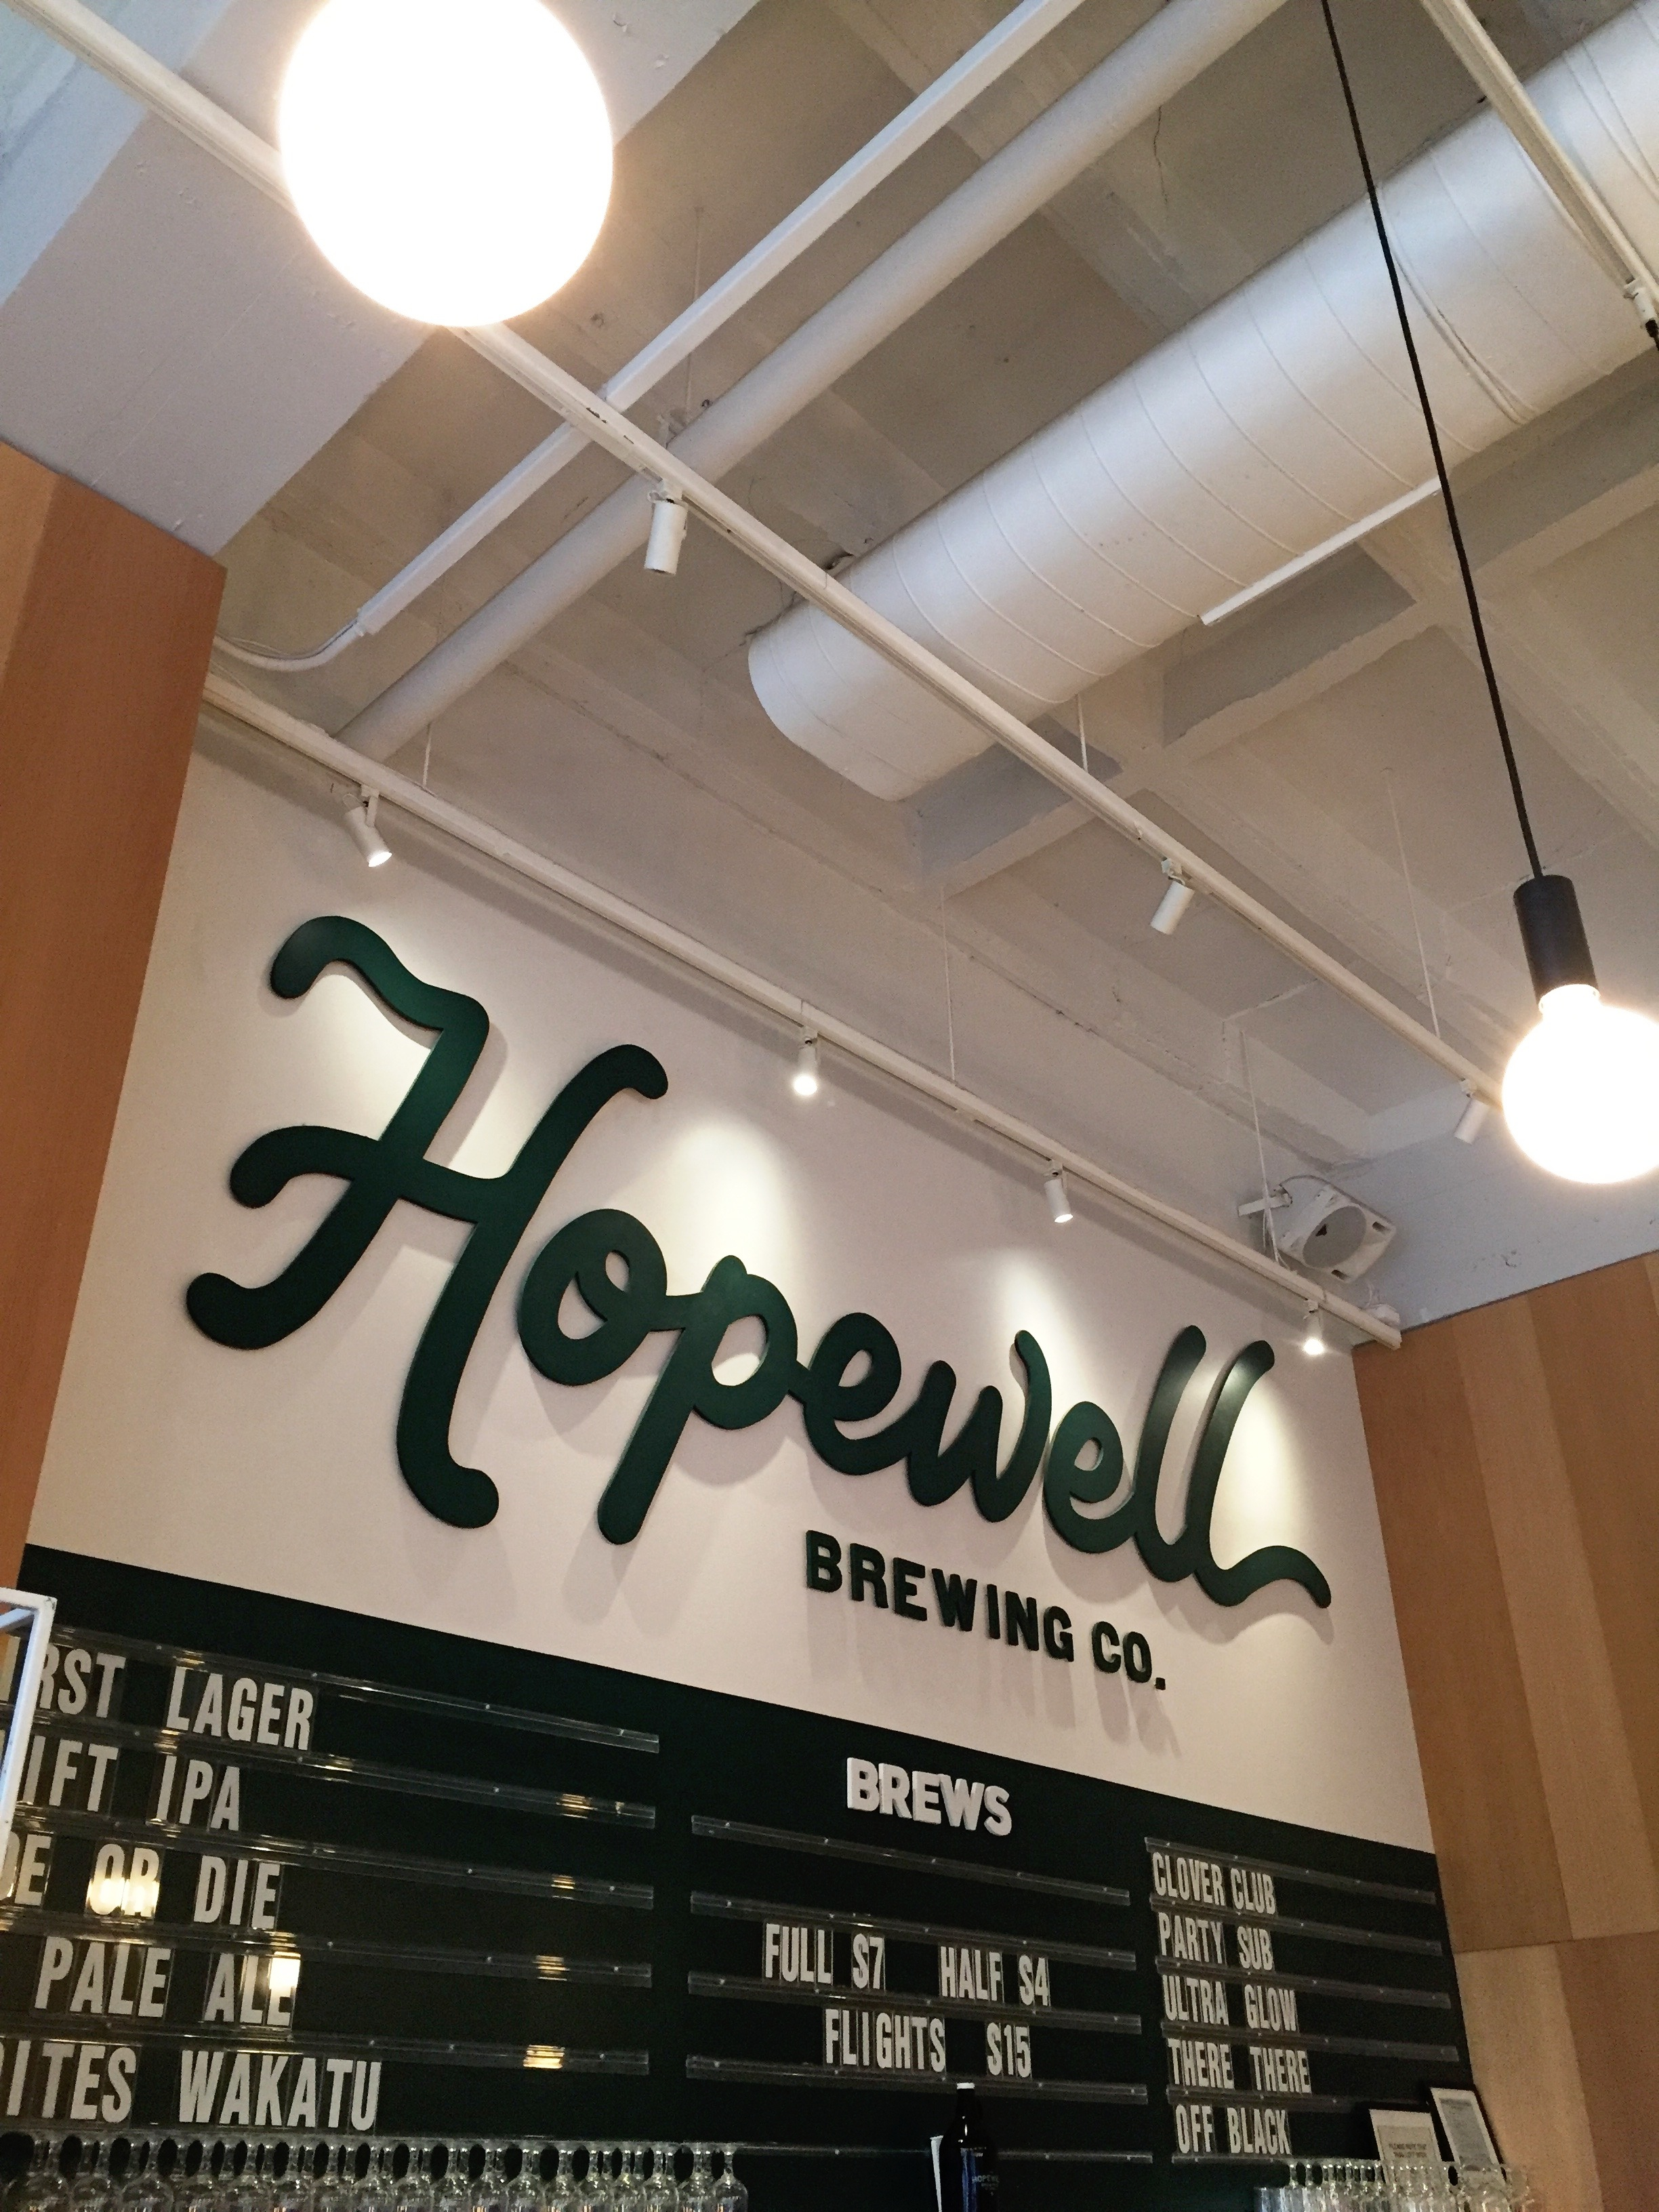 Hopewell Brewing Co, Chicago